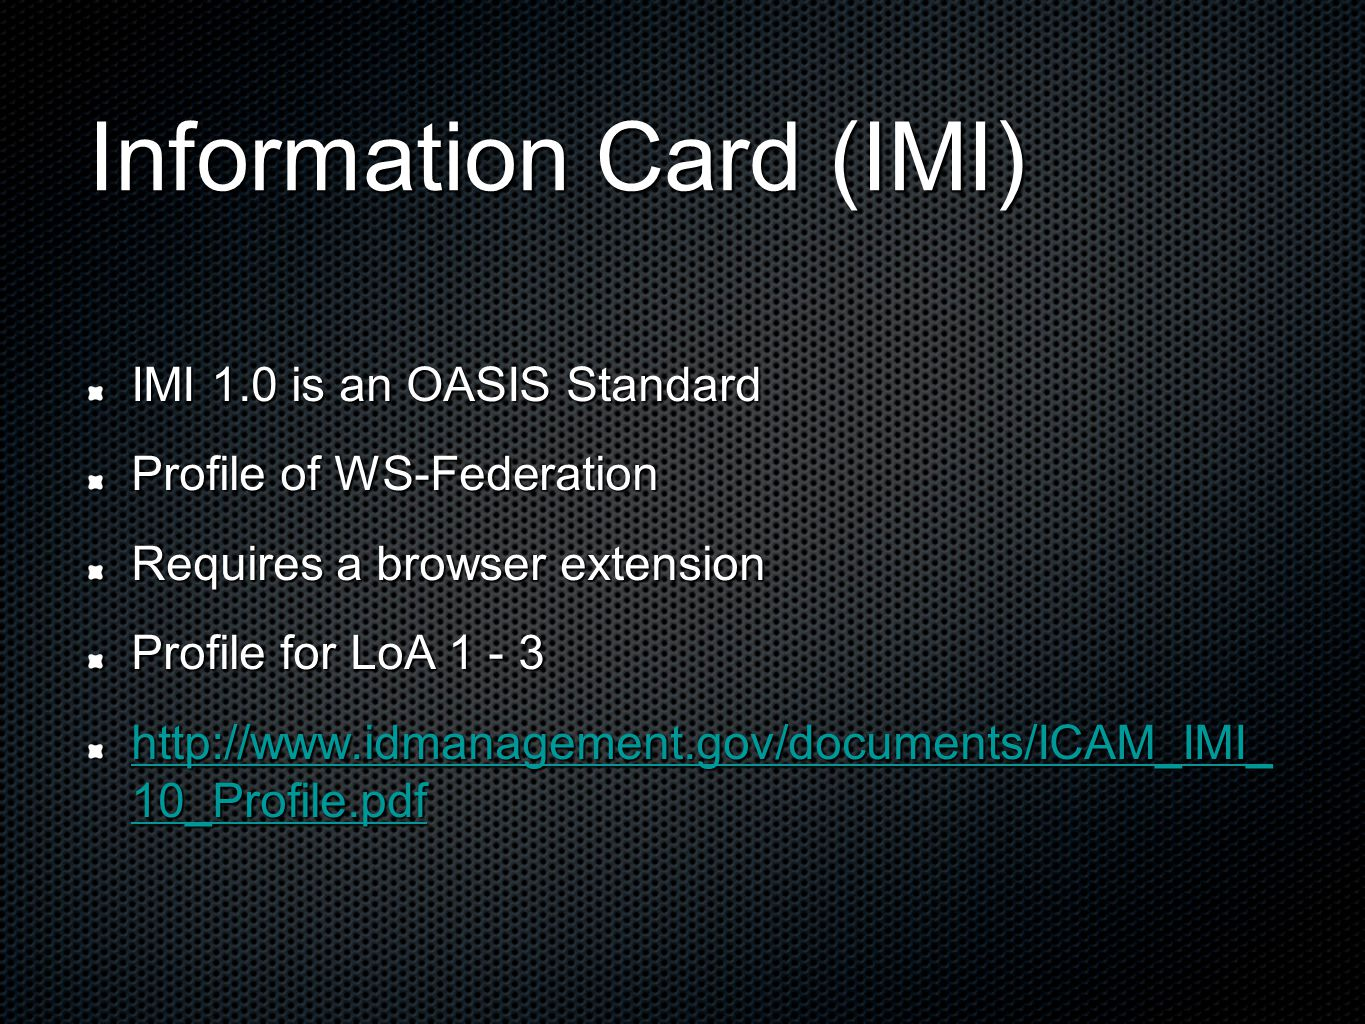 Information Card (IMI) IMI 1.0 is an OASIS Standard Profile of WS-Federation Requires a browser extension Profile for LoA 1 - 3 http://www.idmanagemen